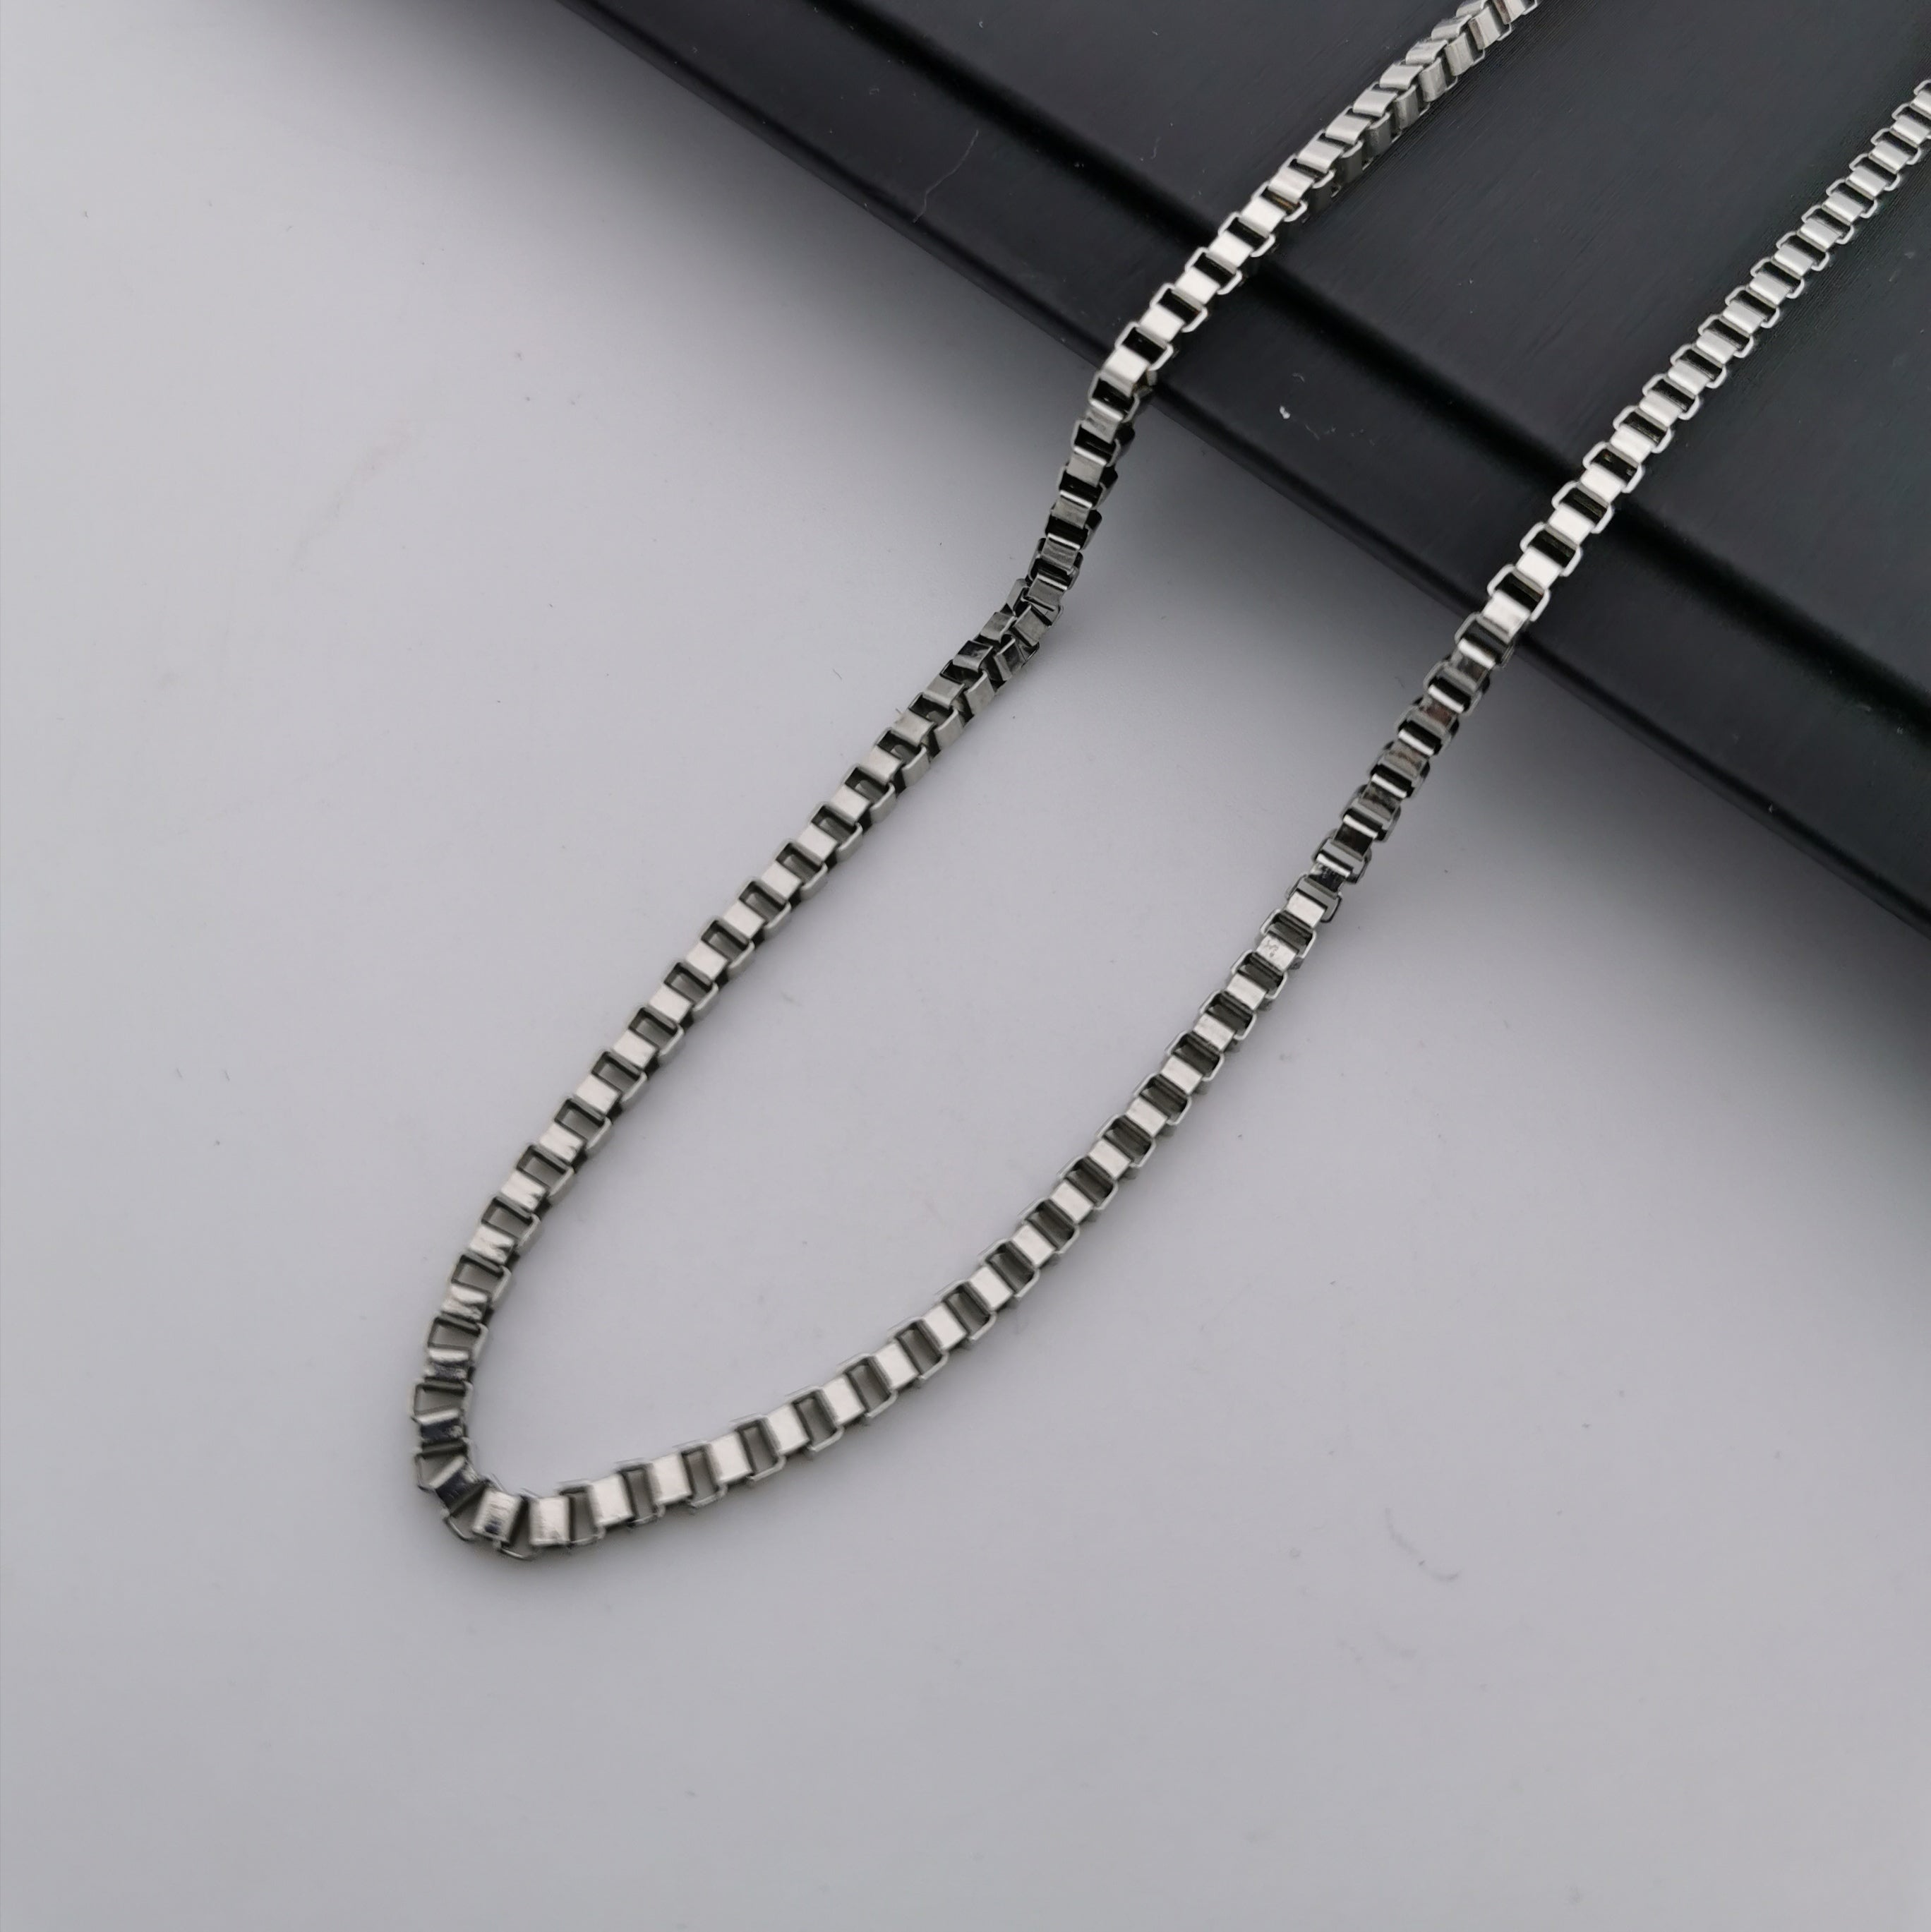 Stainless steel box chain